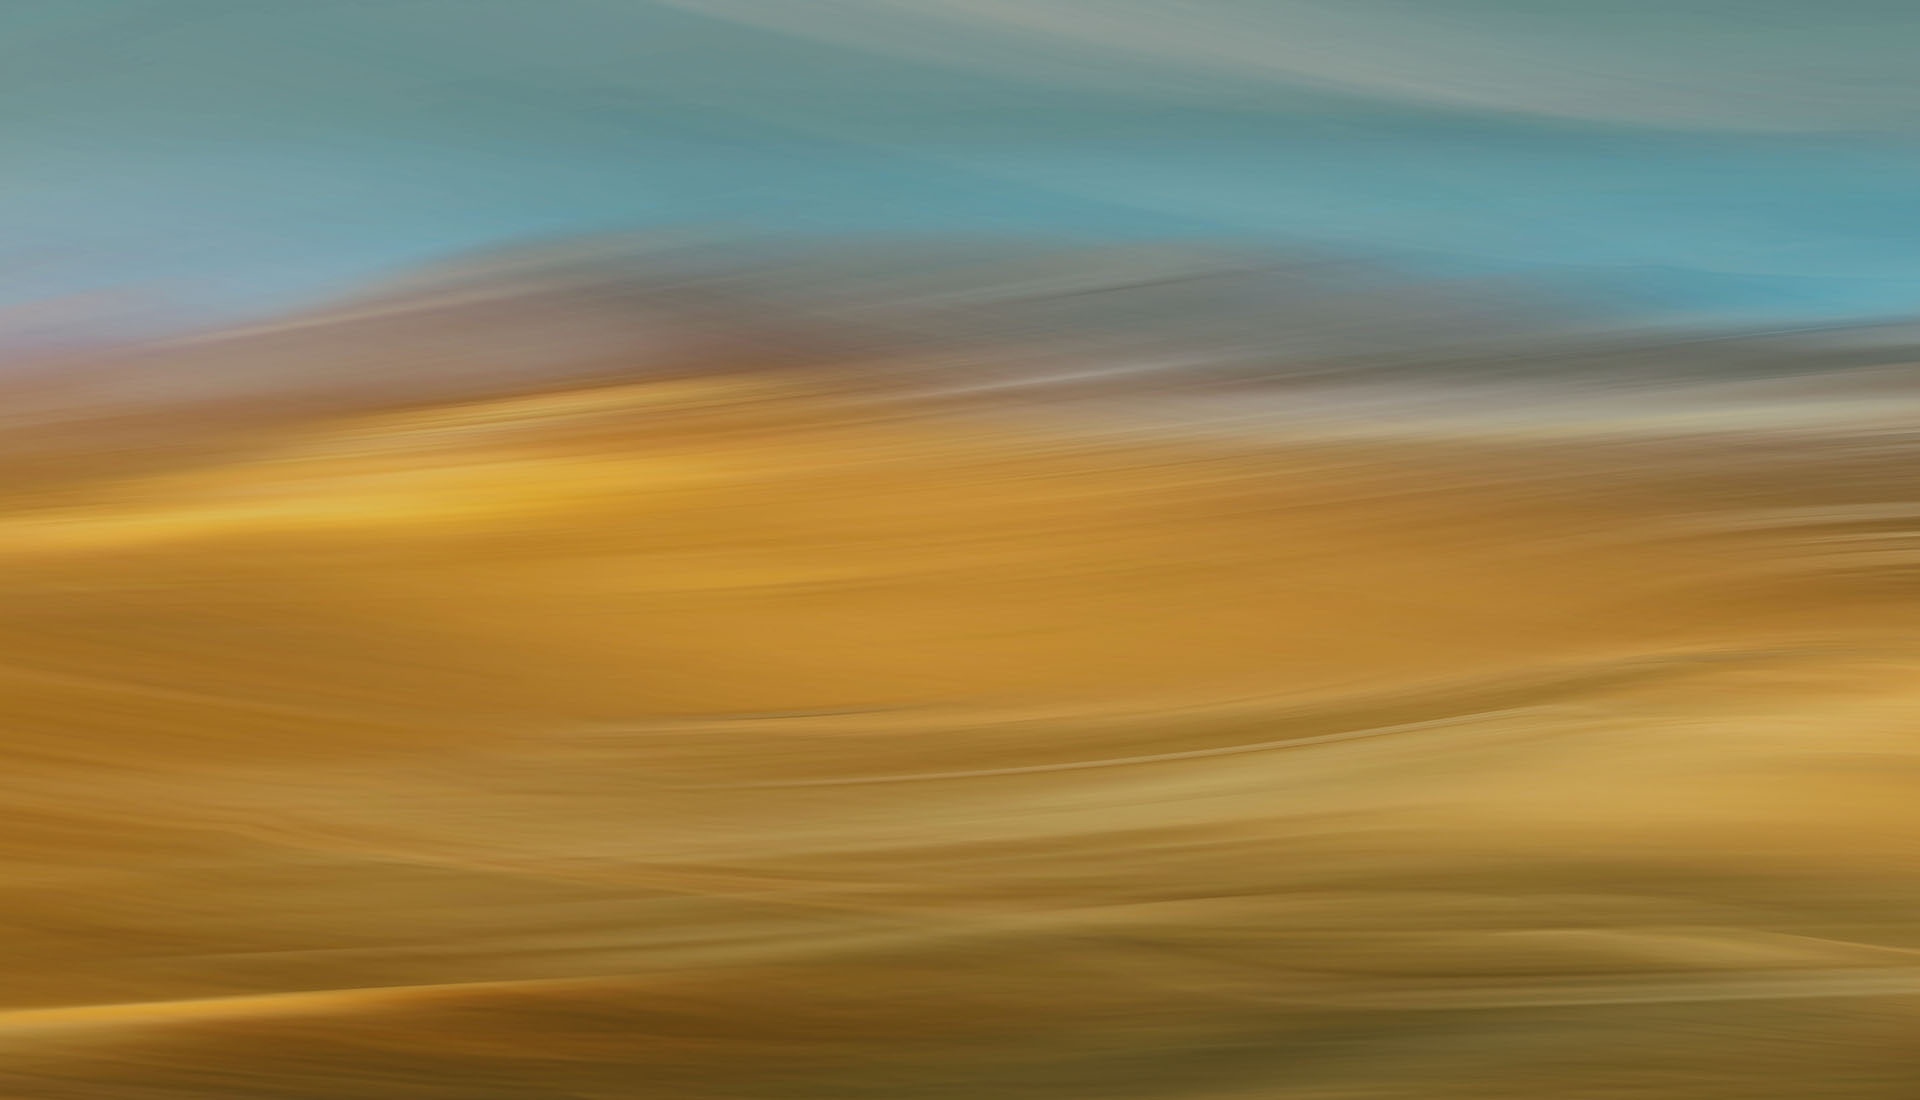 Abstract of Timanfaya National Park